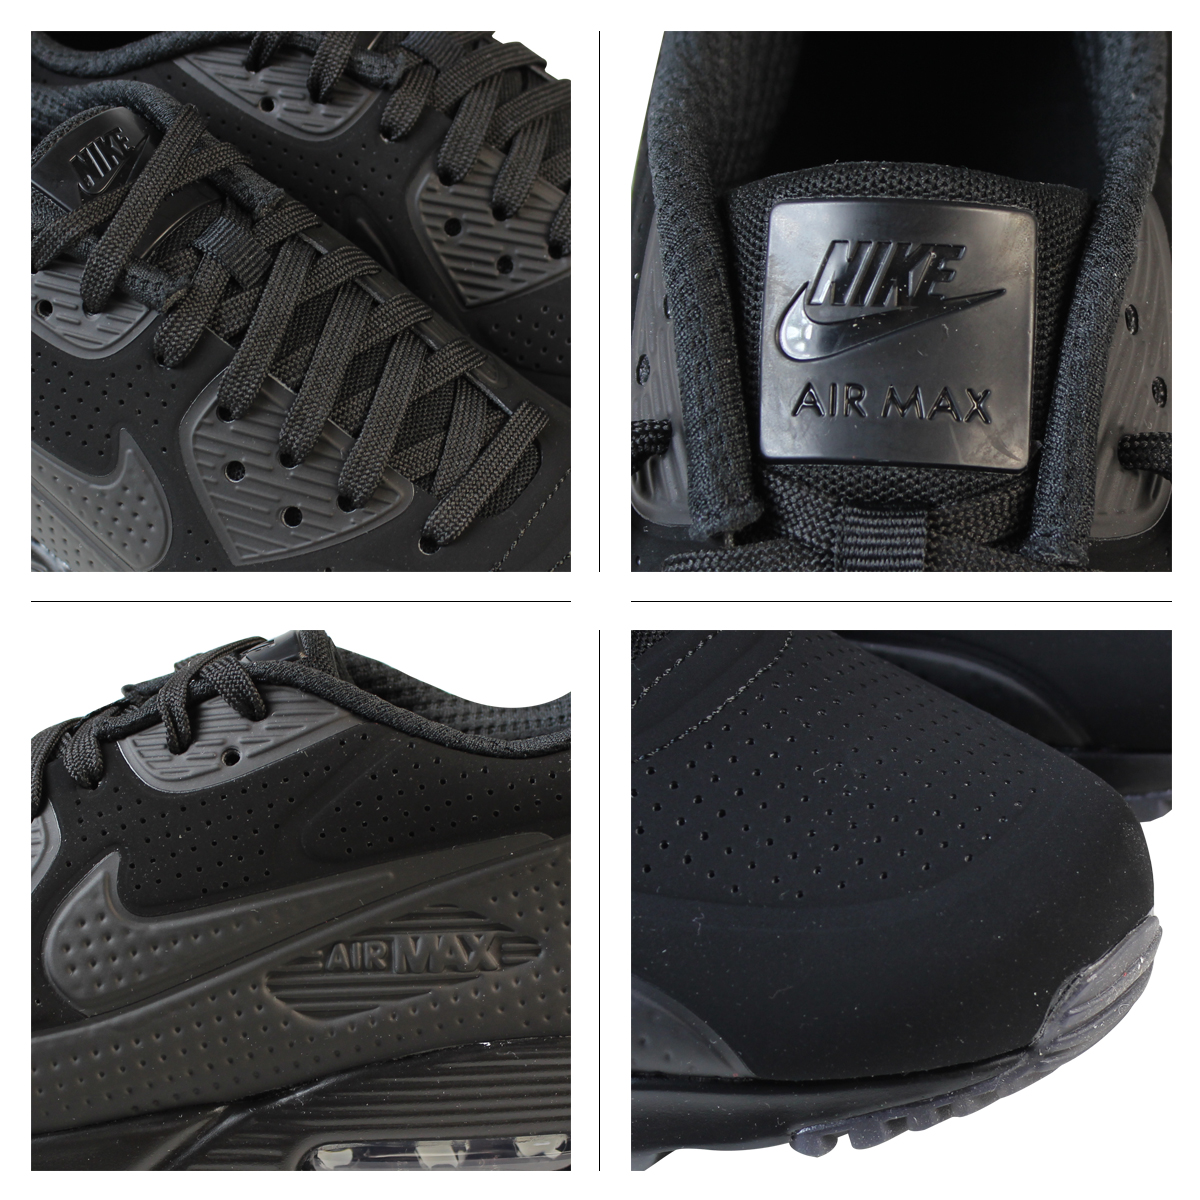 NIKE Kie Ney AMAX sneakers AIR MAX 90 ULTRA MOIRE Air Max 90 ultra moire 819,477 010 men's shoes black black